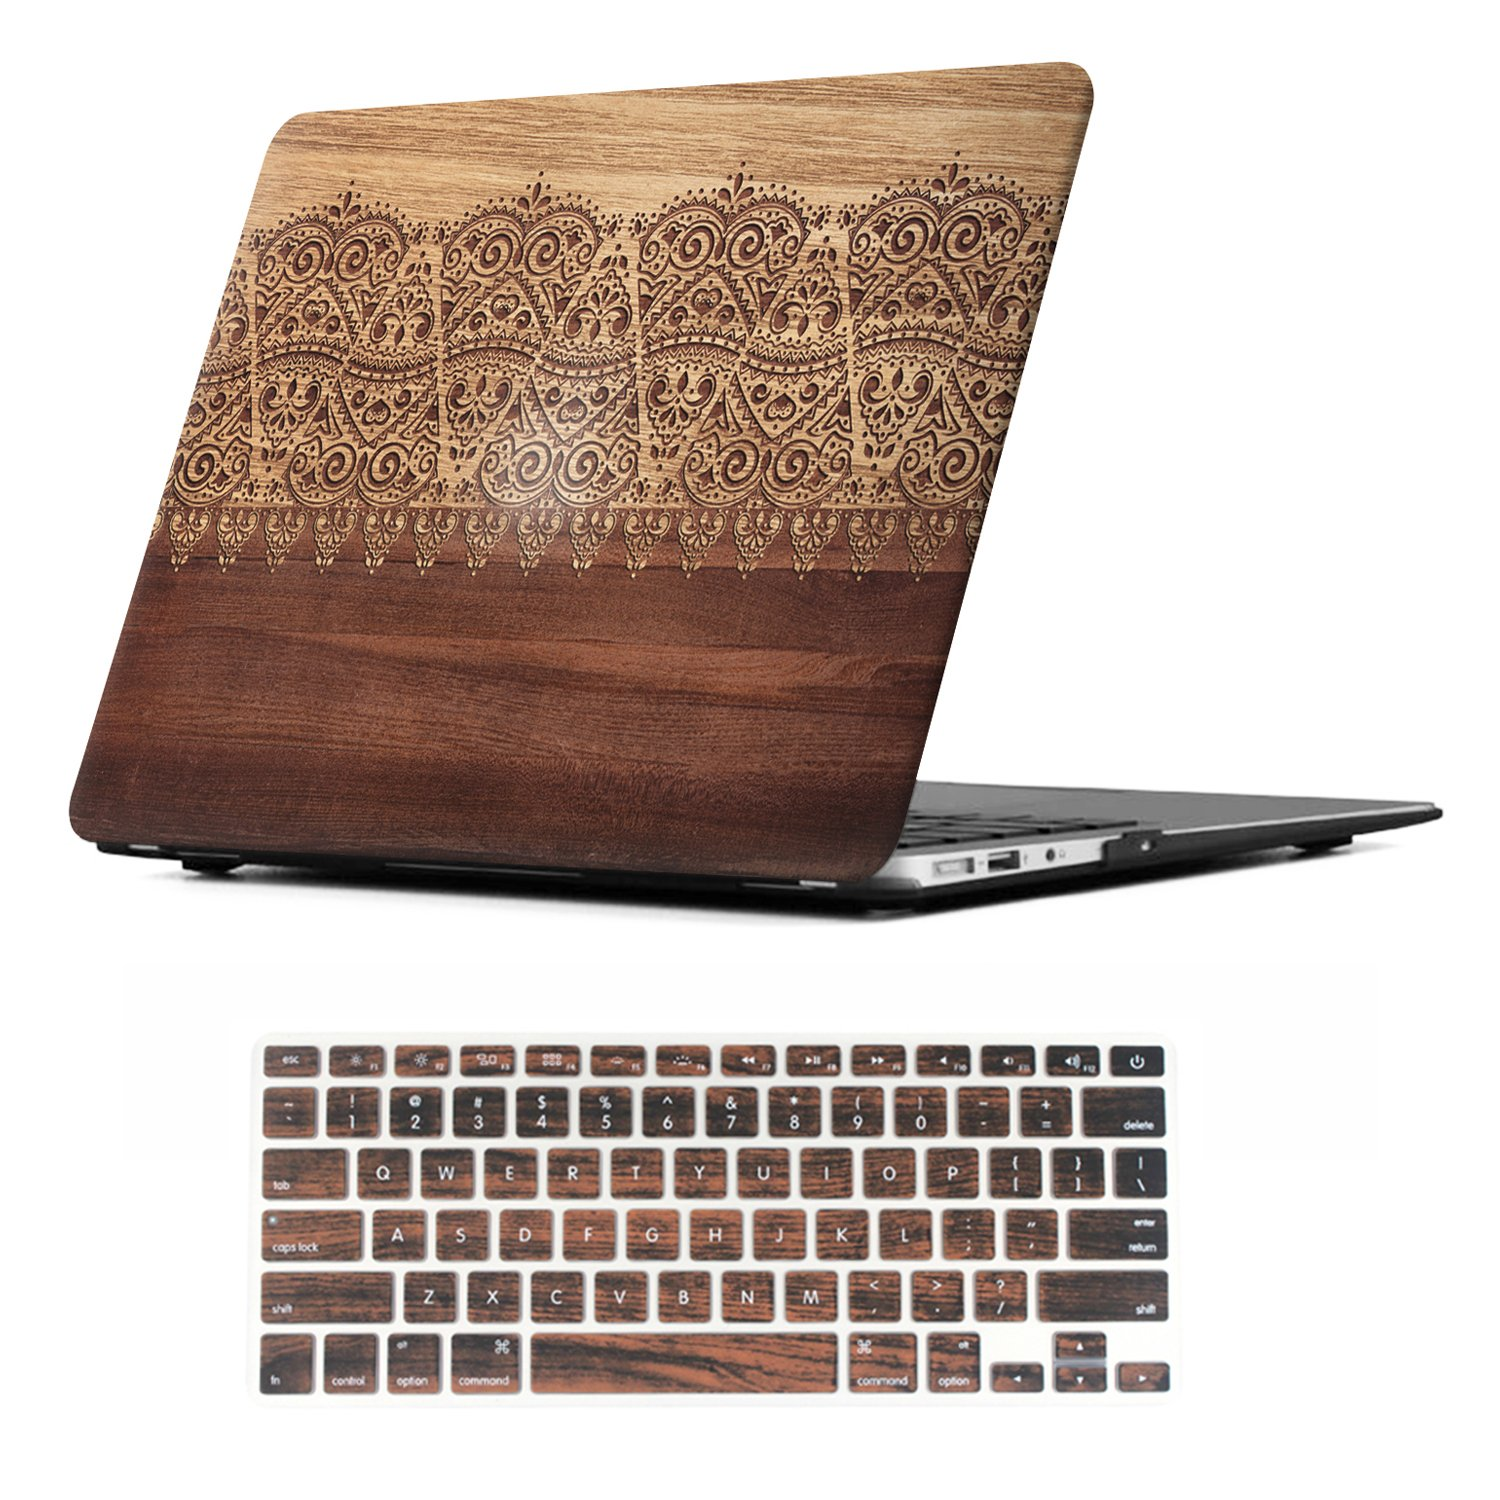 iCasso 2 in 1 MacBook Air 13 Inch Case Durable Rubber Coated Plastic Cover for MacBook Air 13 Inch Model A1369/A1466 with Keyboard Cover (Wood Lace)